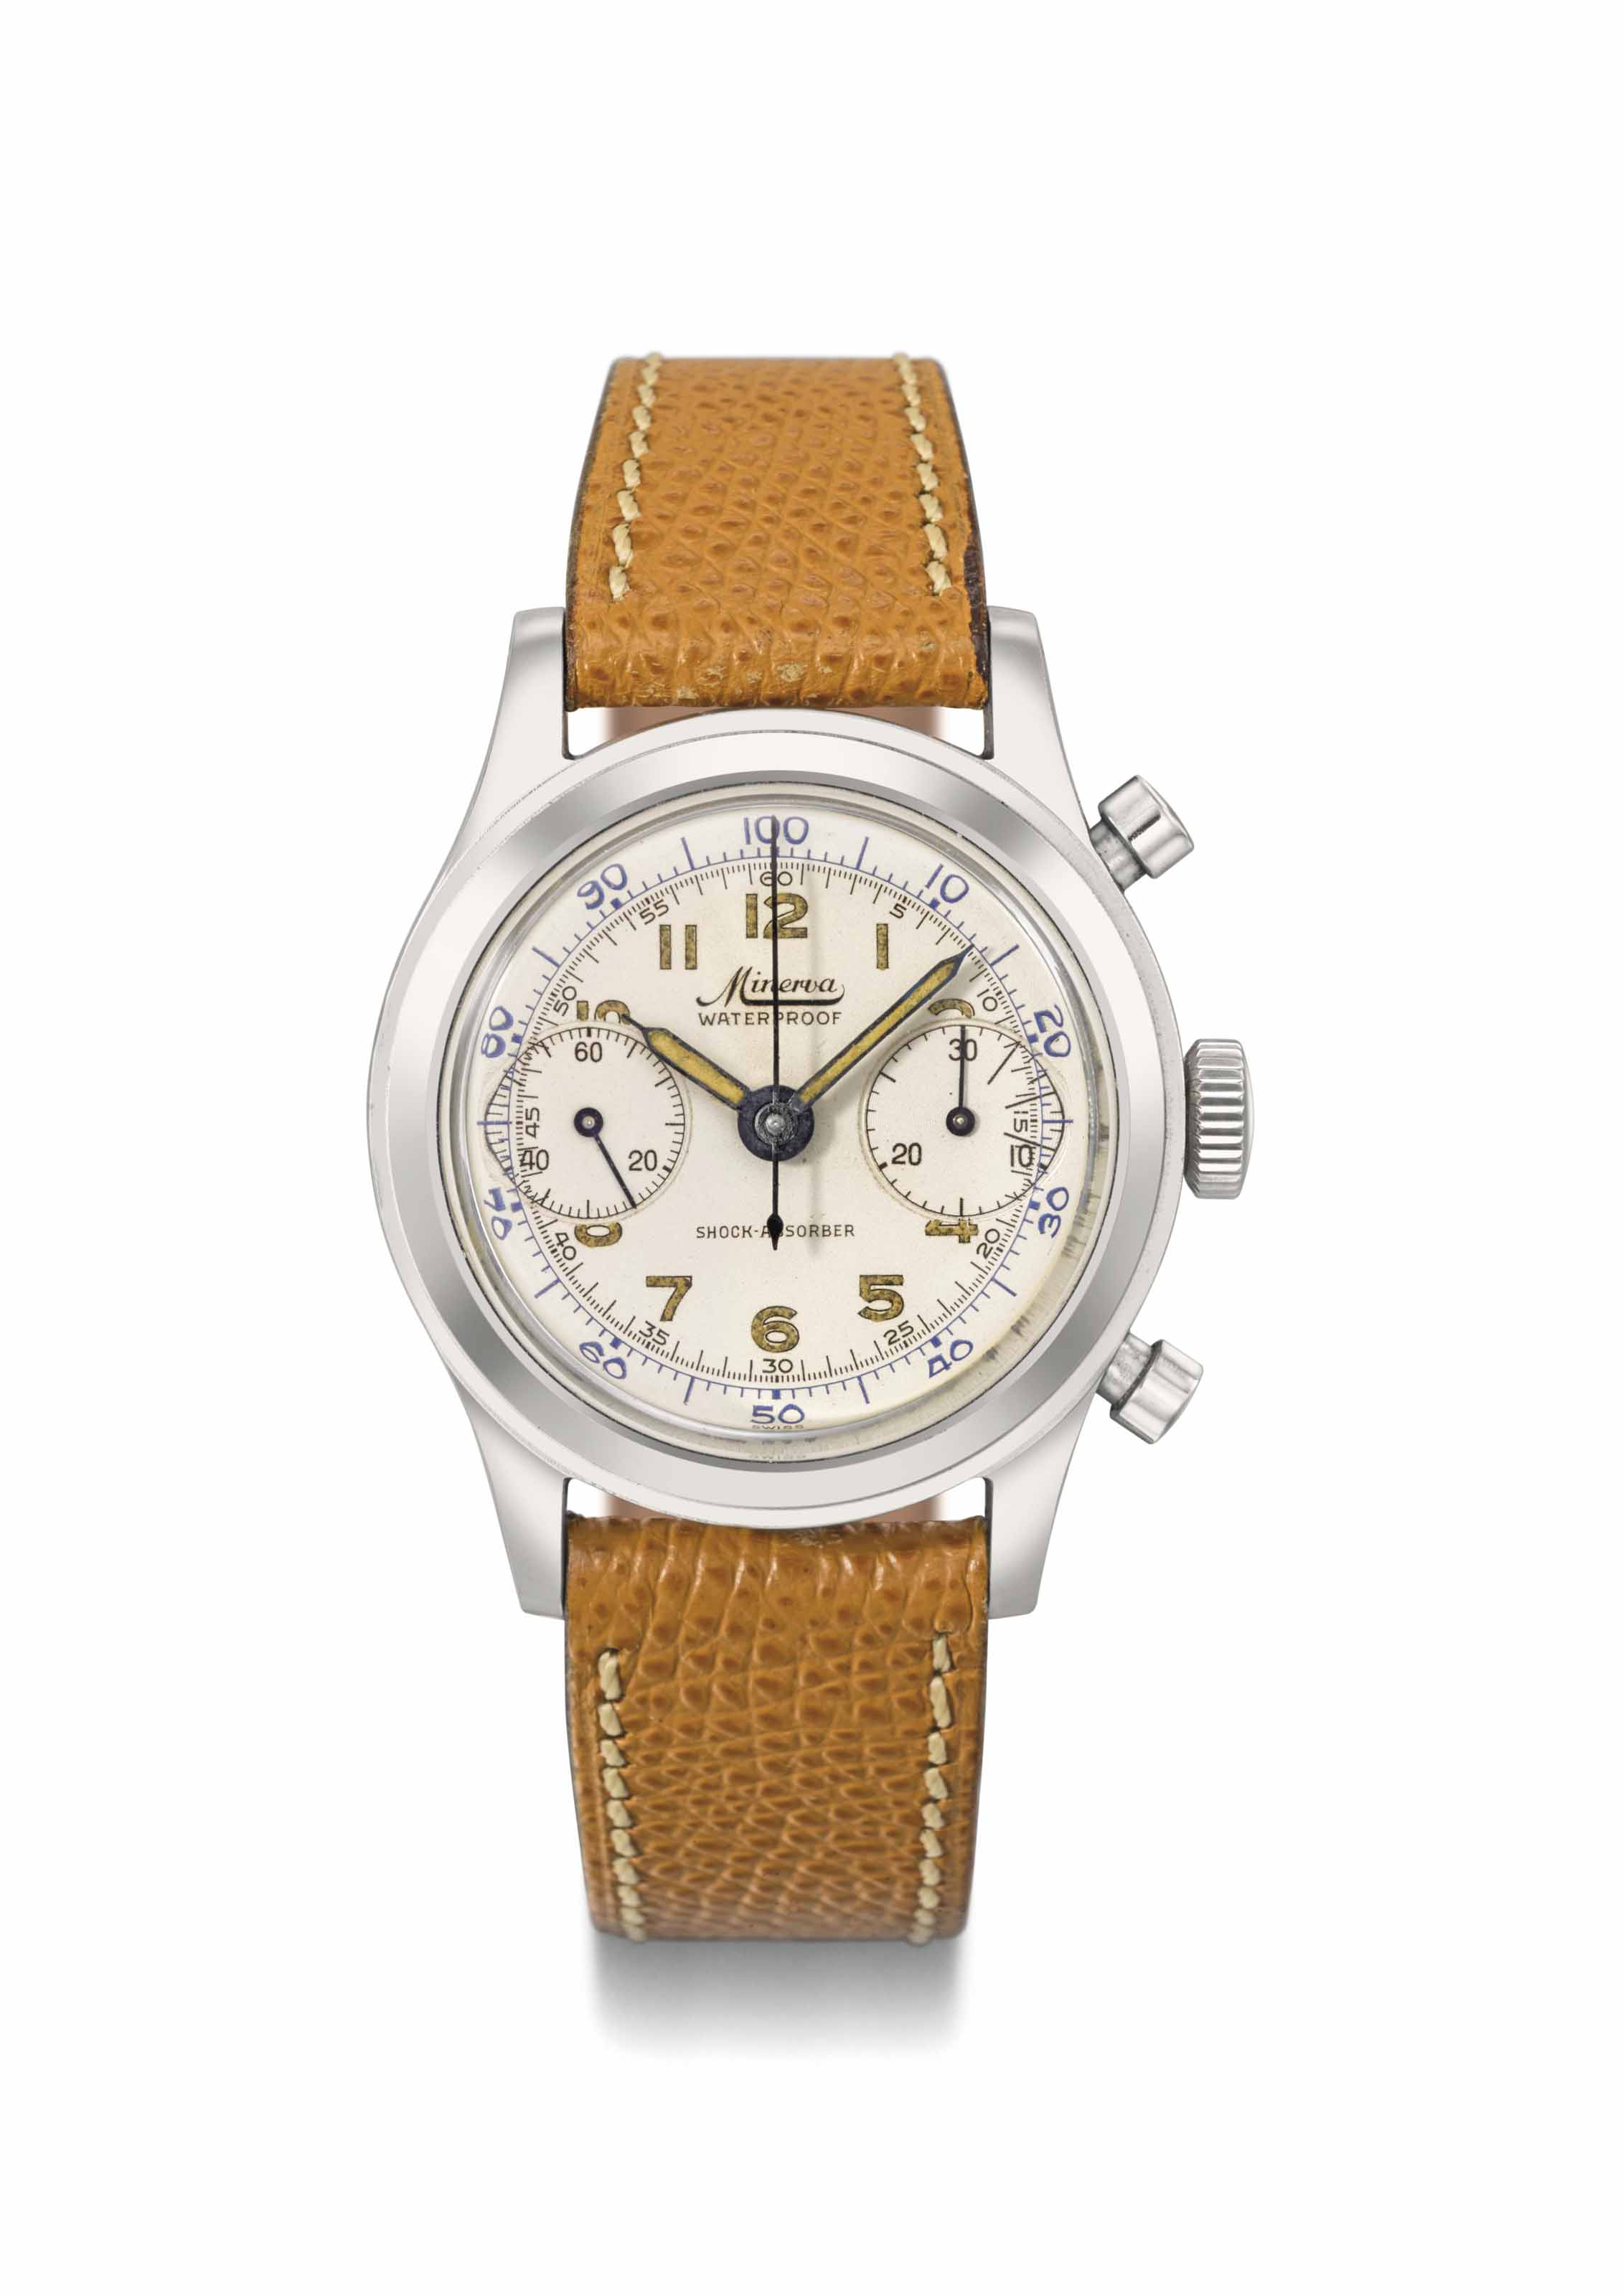 Minerva. A stainless steel chronograph wristwatch